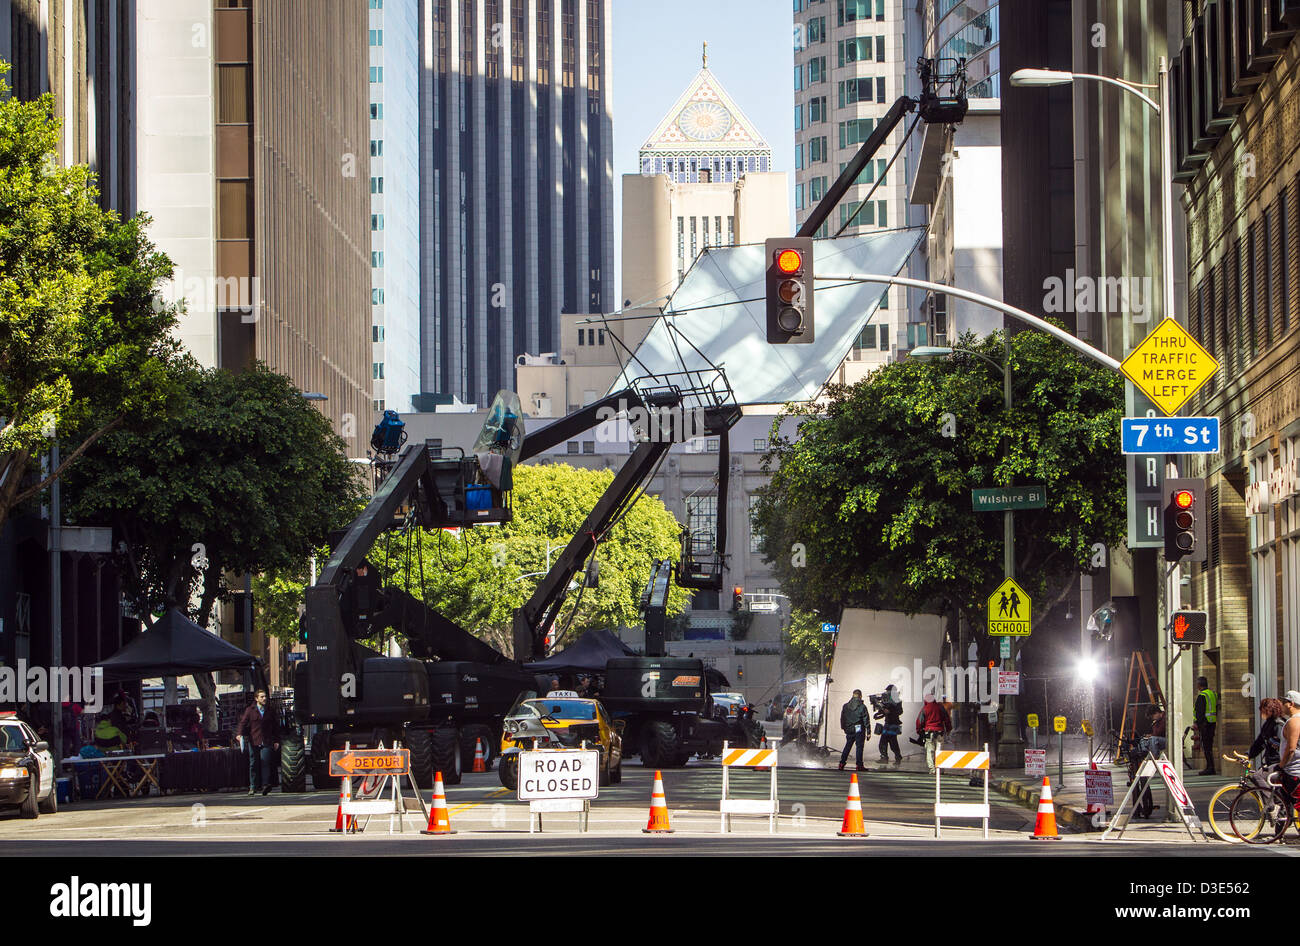 A television commercial filming on location in the downtown area of Los Angeles. - Stock Image